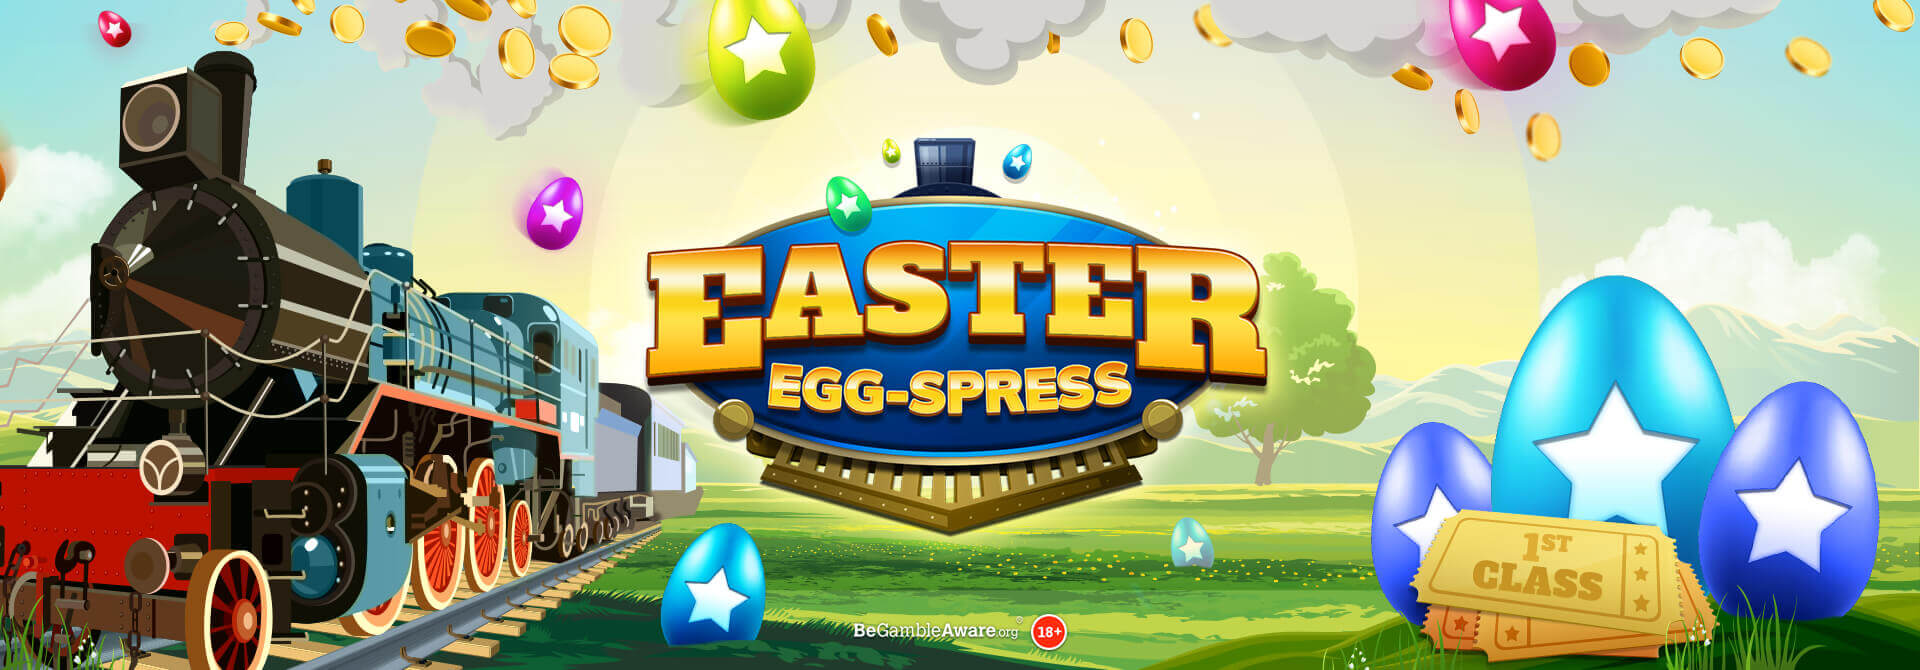 Find out who steamed away with big prizes aboard the Easter Egg-spress